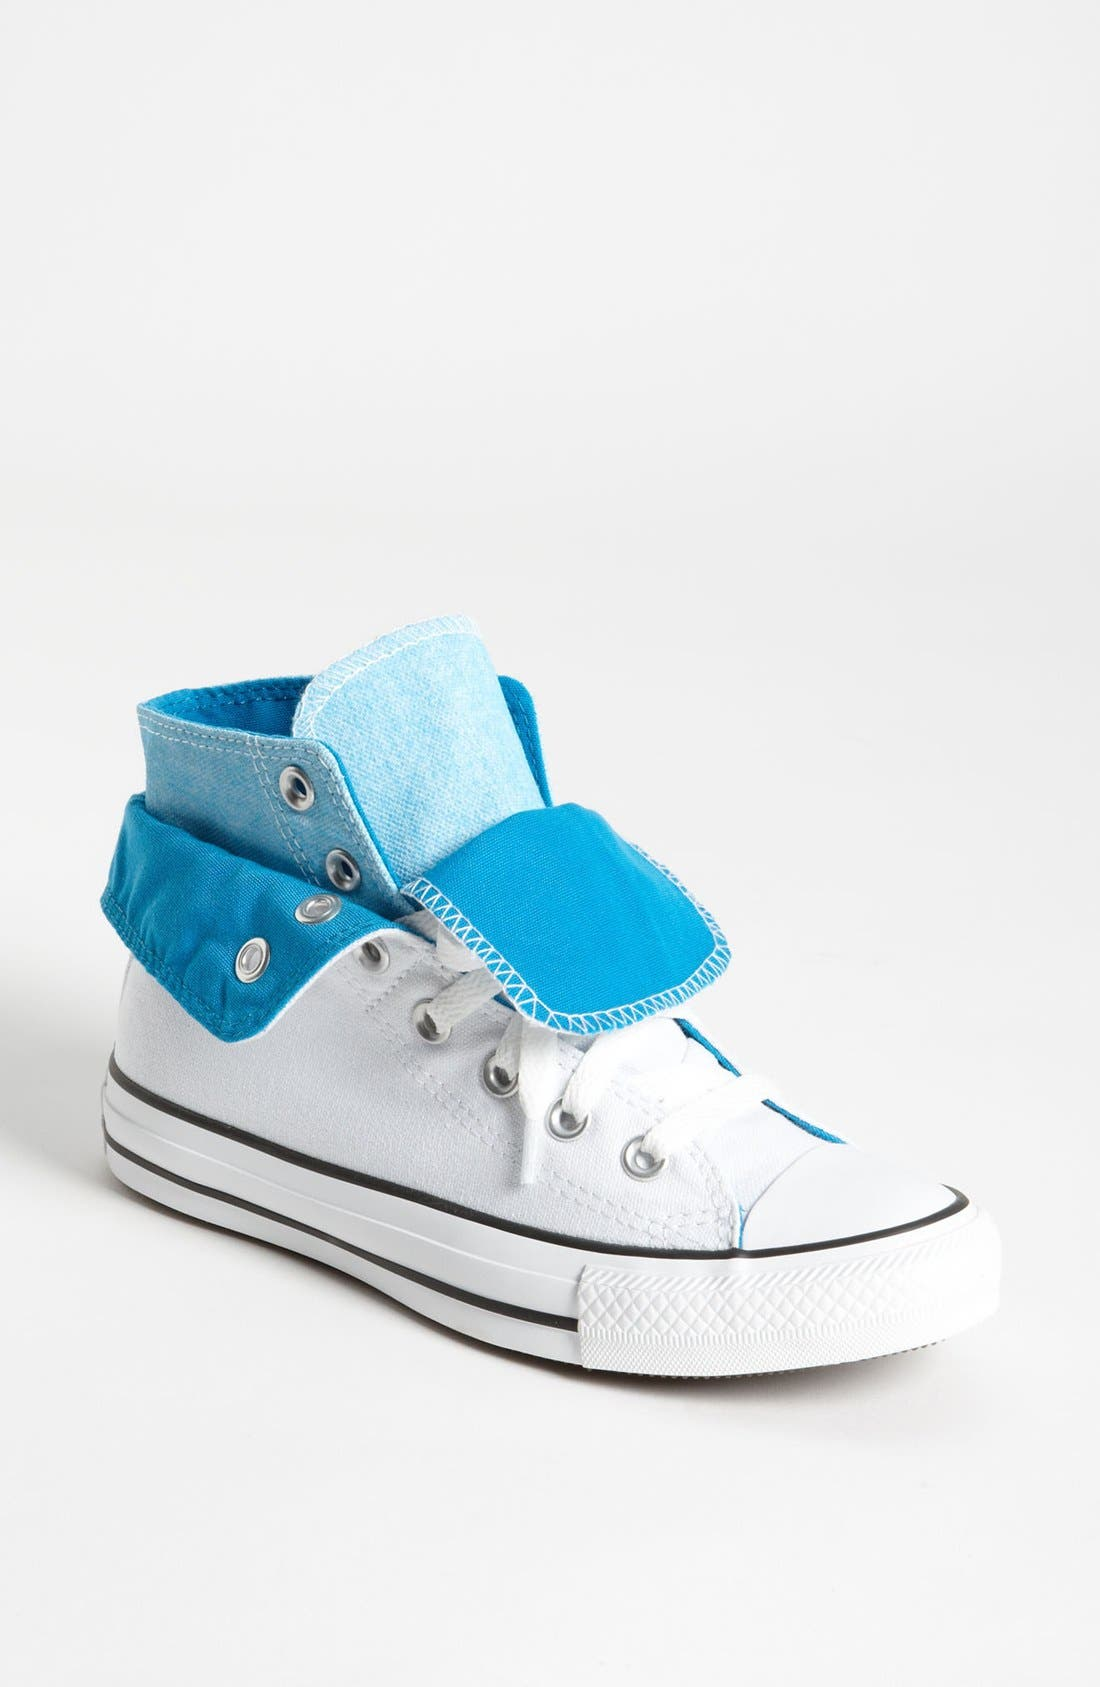 Main Image - Converse Chuck Taylor® All Star® Double Tongue High Top Sneaker (Women)